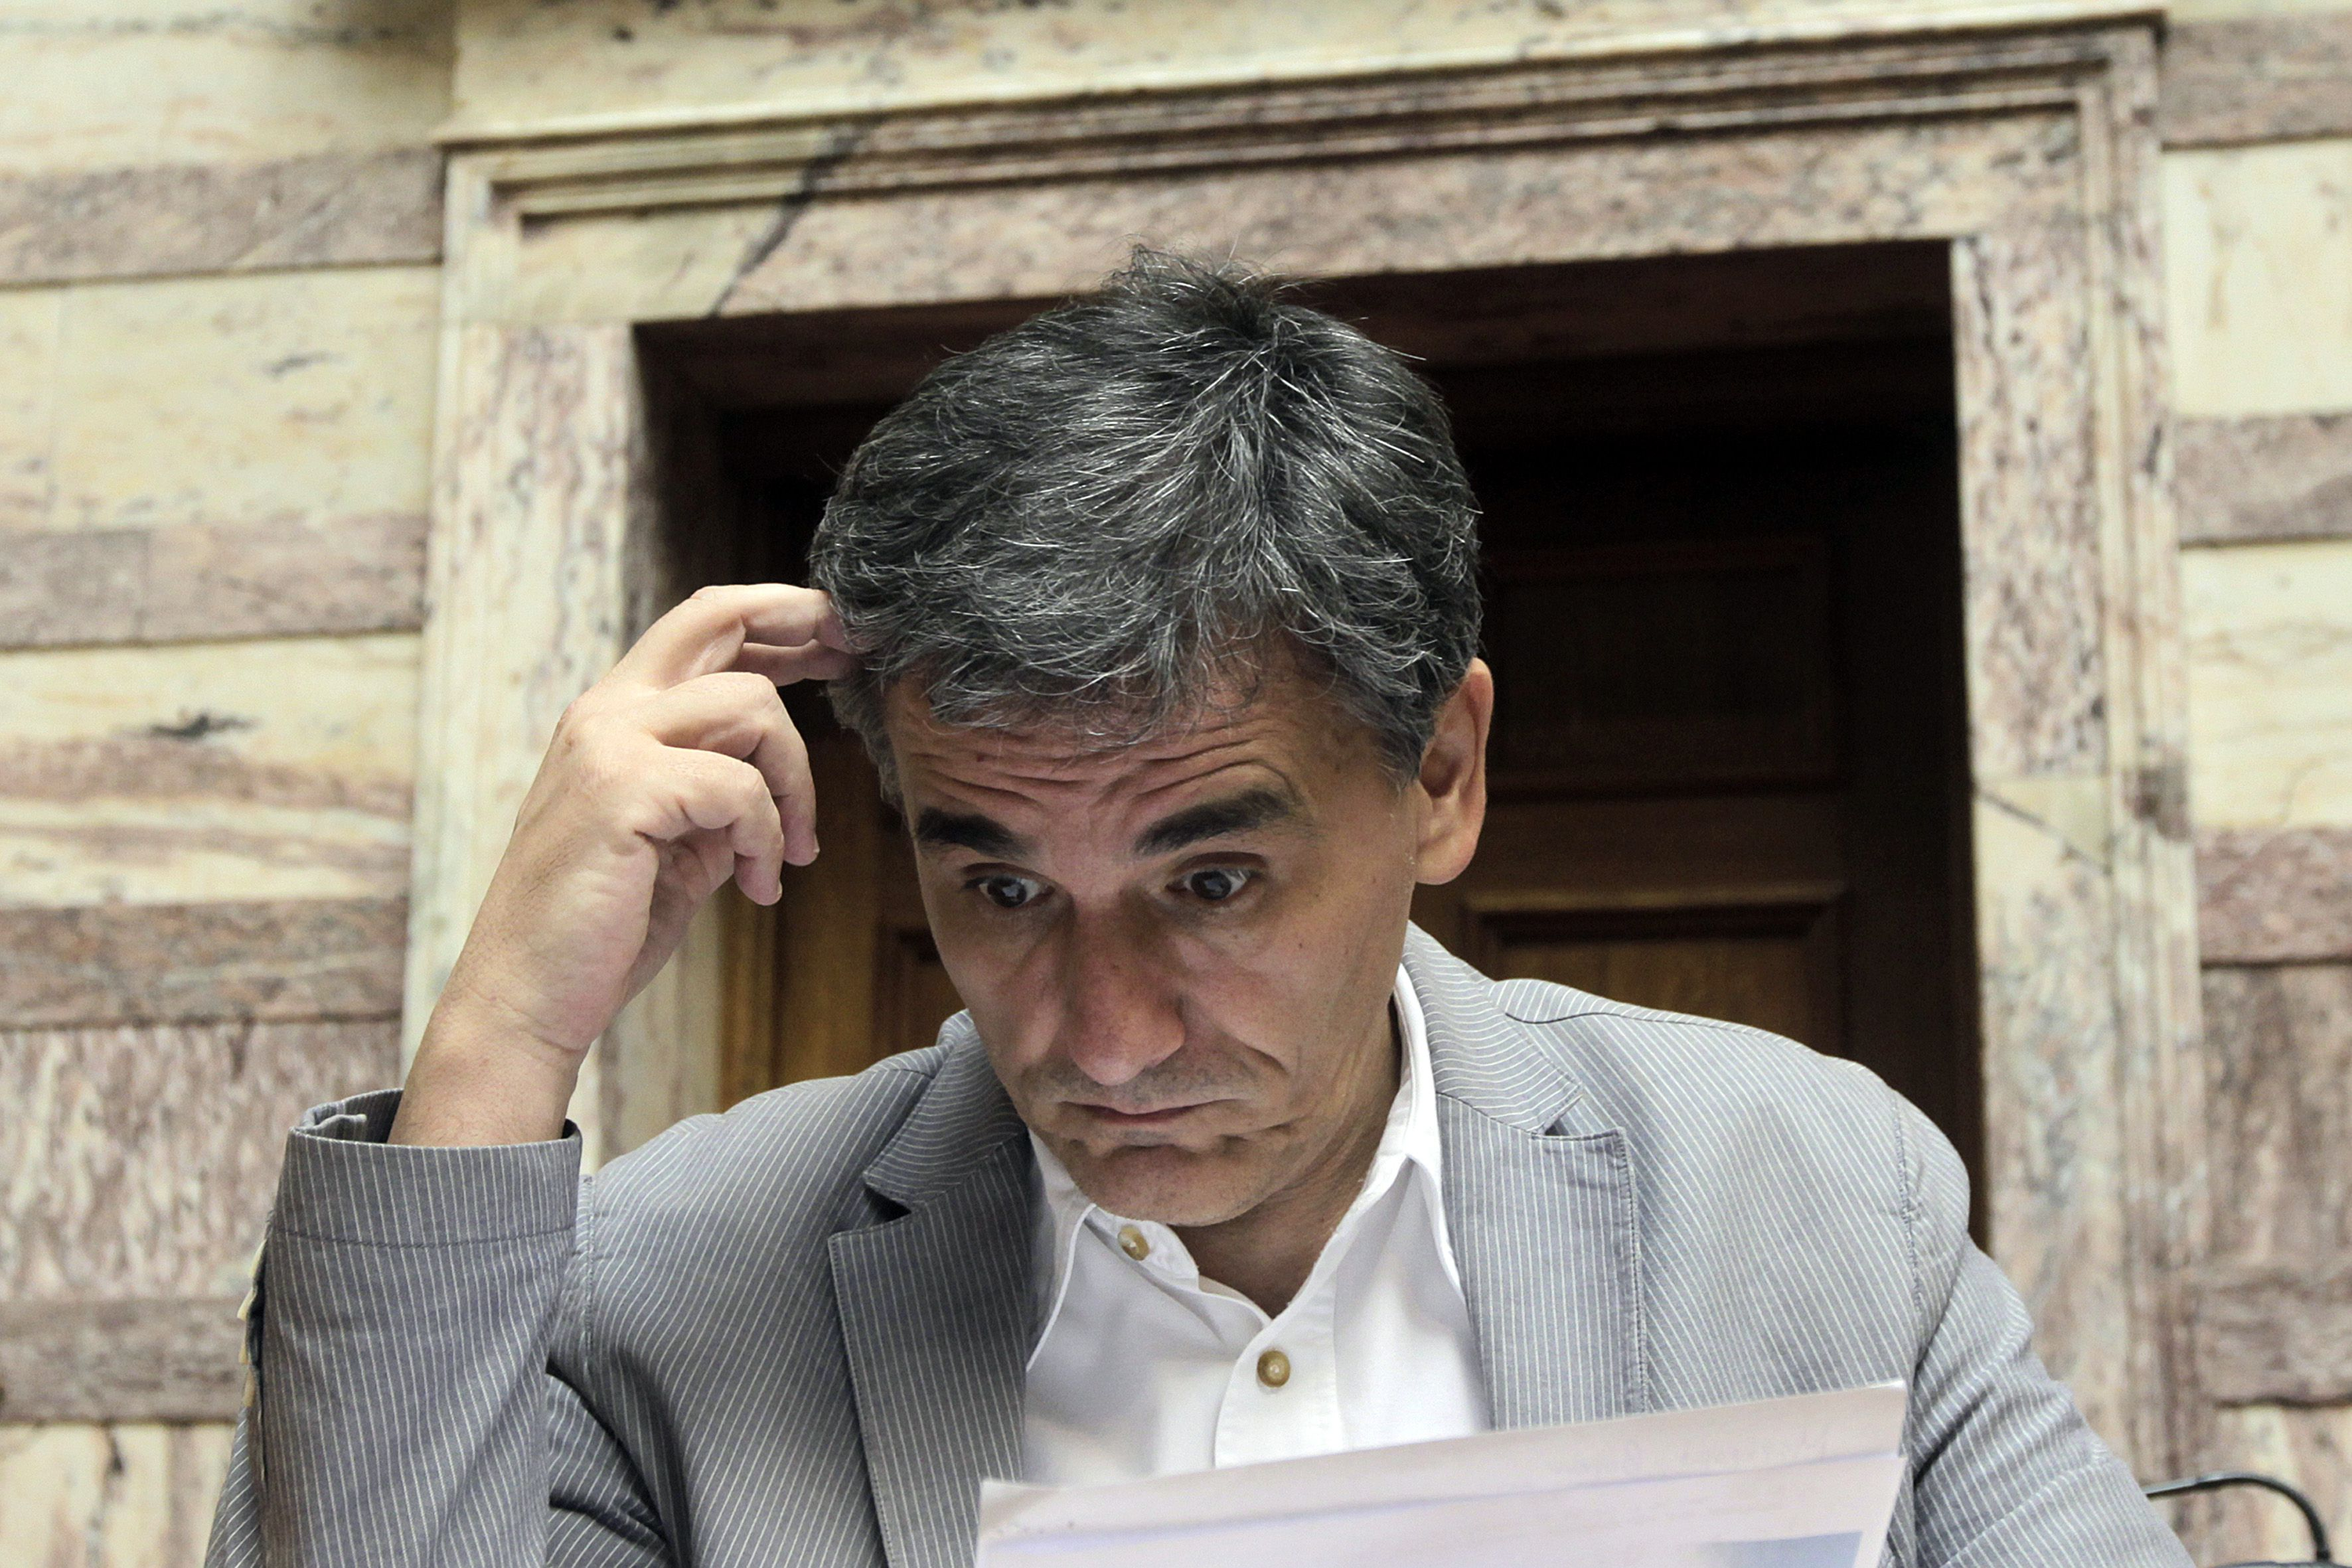 epa04840606 Greek Finance Minister Euclid Tsakalotos reads his notes in the plenumof the Greek Parliament, in Athens, Greece, 10 July 2015. The parliamentary group of governing SYRIZA party met on the proposal scheme that the government sent to its creditors. Greece's proposals were submitted to Brussels late 09 July, as part of a plan to support their request for a three-year loan. According to Greek financial website Capital.gr, the loan request is for 53.5 billion euros (59 billion dollars) from the eurozone bailout fund, the European Stability Mechanism (ESM).  EPA/ORESTIS PANAGIOTOU